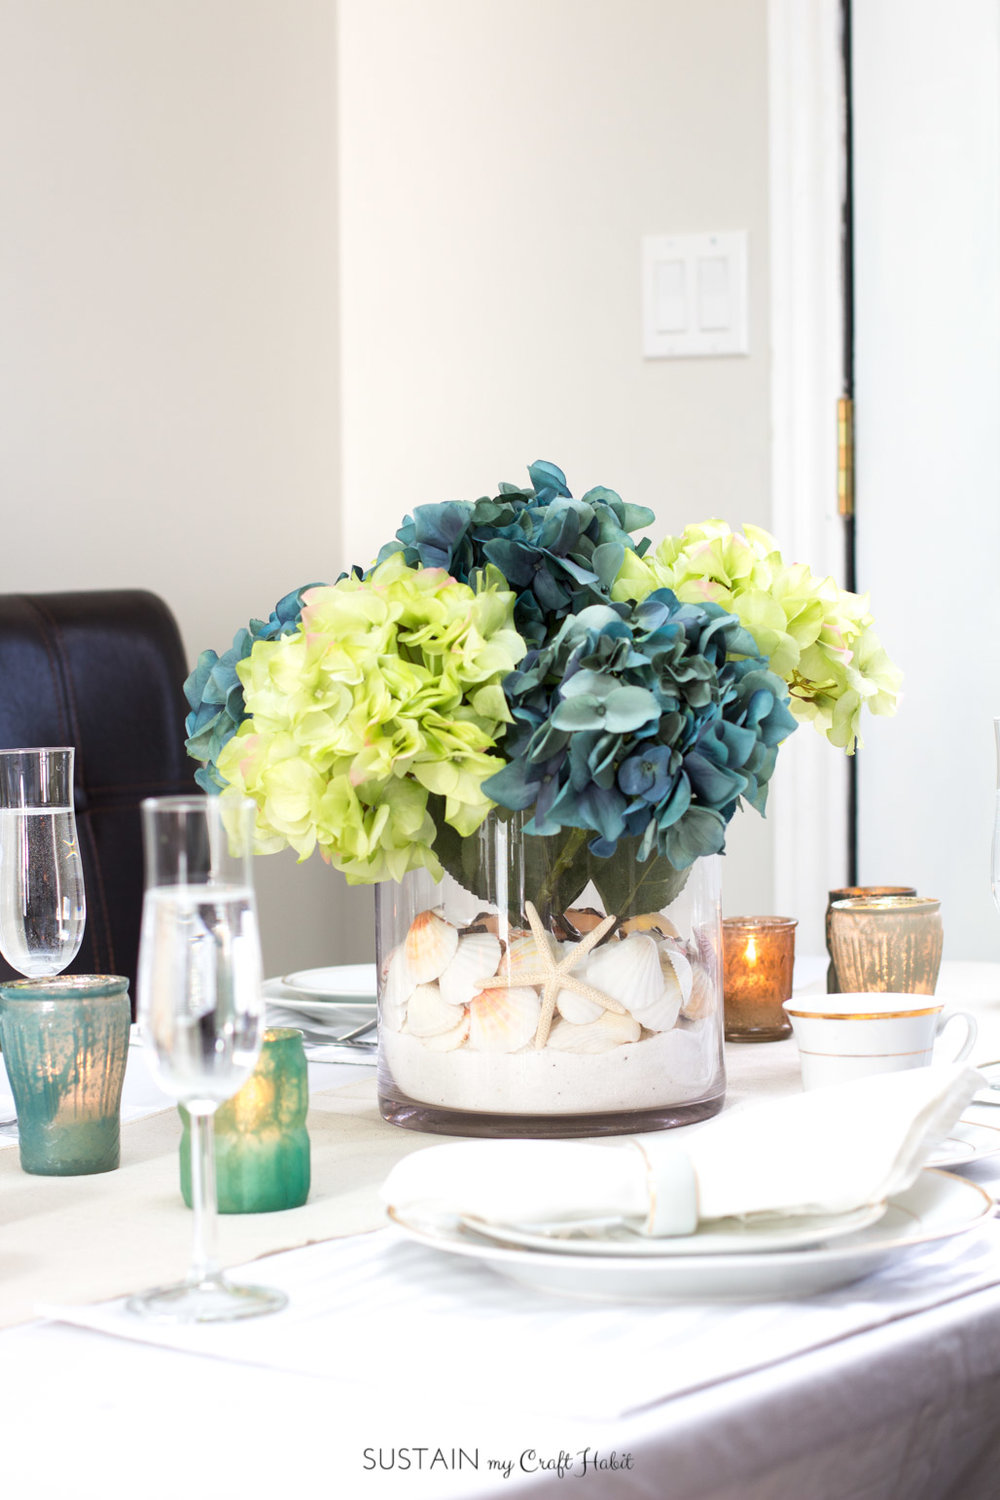 Stunning! Learn how to create an elegant beach theme centerpiece to accent this gorgeous summer tablescape. The perfect DIY idea for a destination wedding, coastal bridal shower or beachy party. Video tutorial included. #afloral #sponsored